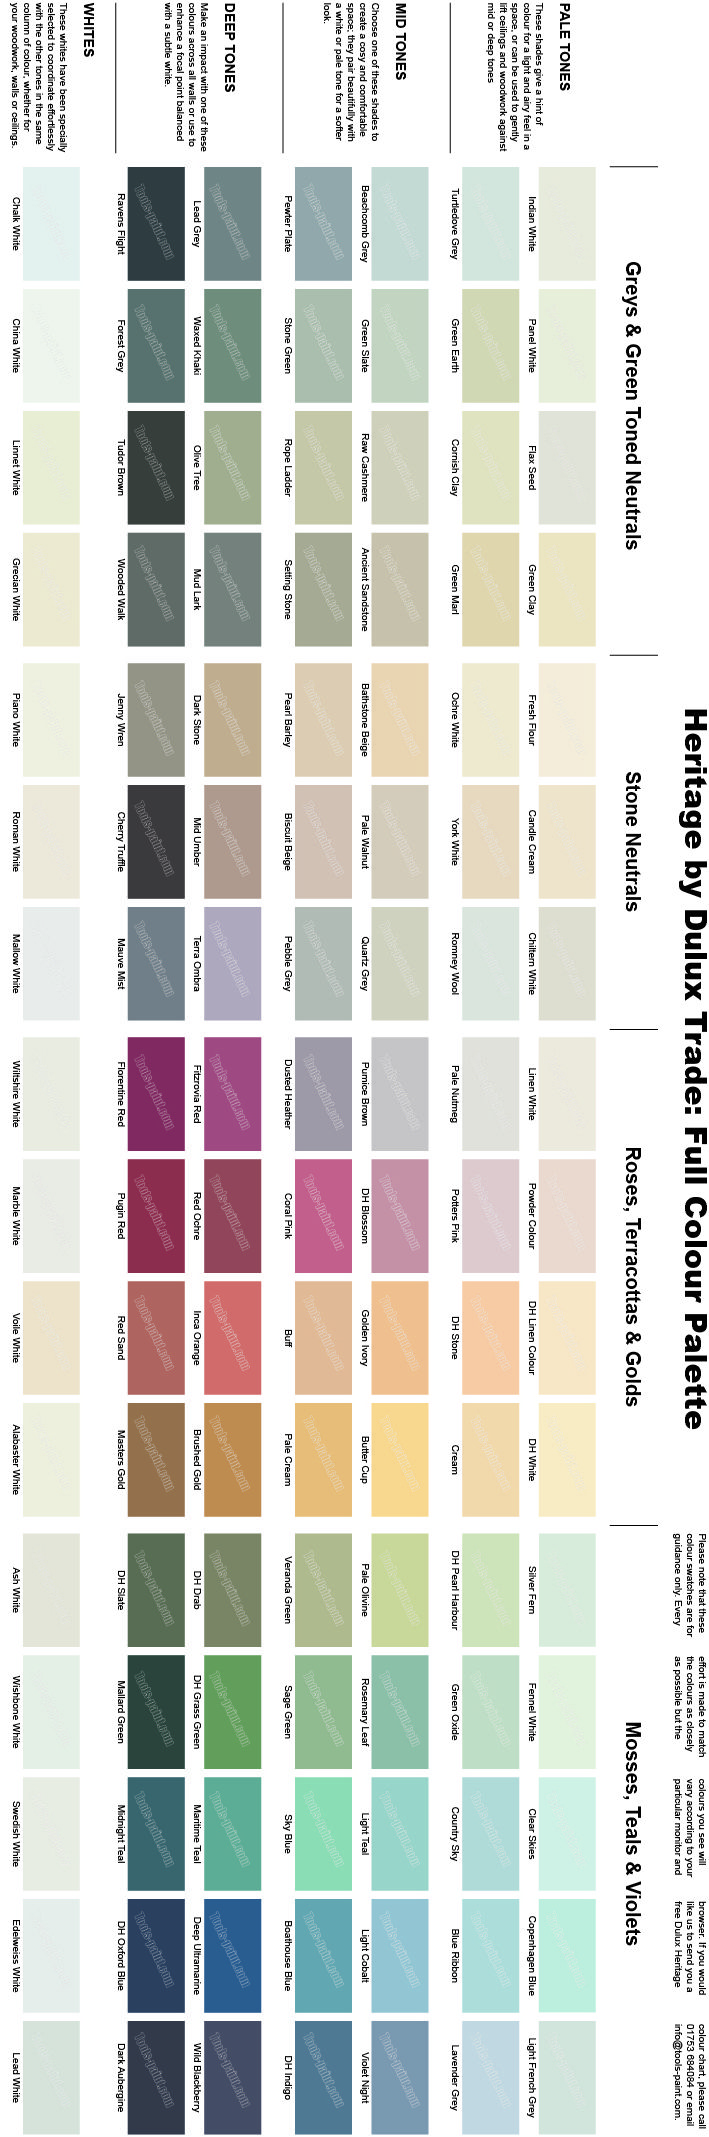 Best 25 dulux paint colours ideas on pinterest dulux paint colours lounge dulux paint - Dulux exterior paint colour chart decoration ...